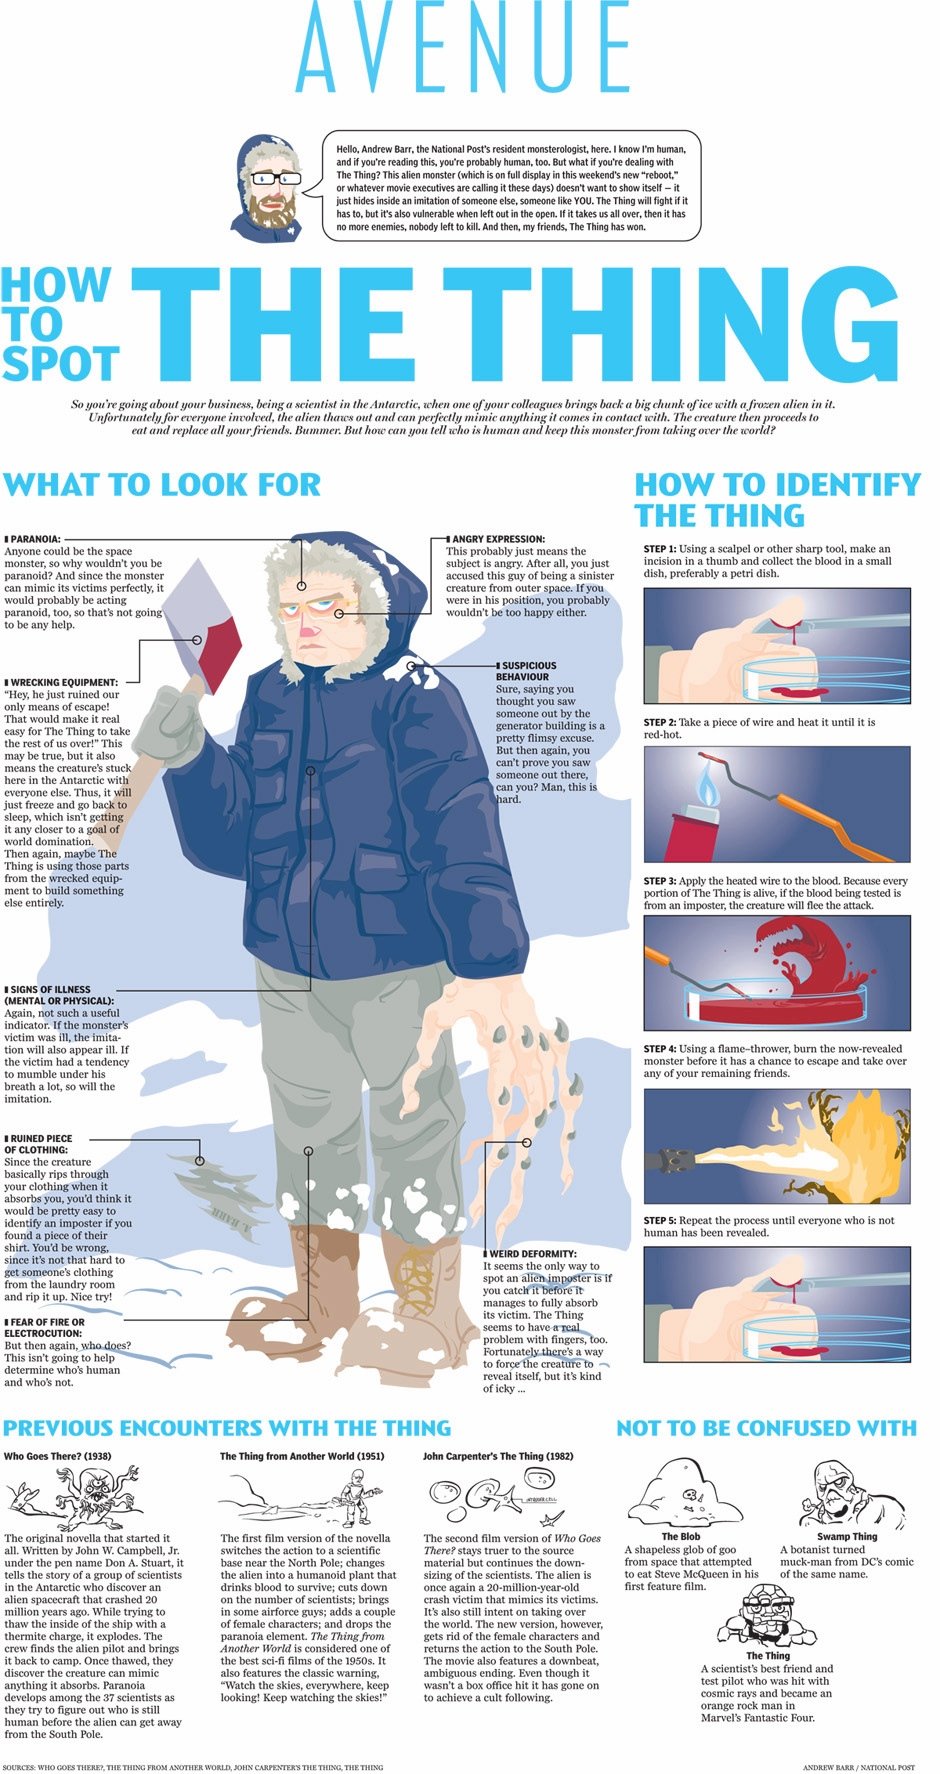 Infographic: How to spot The Thing